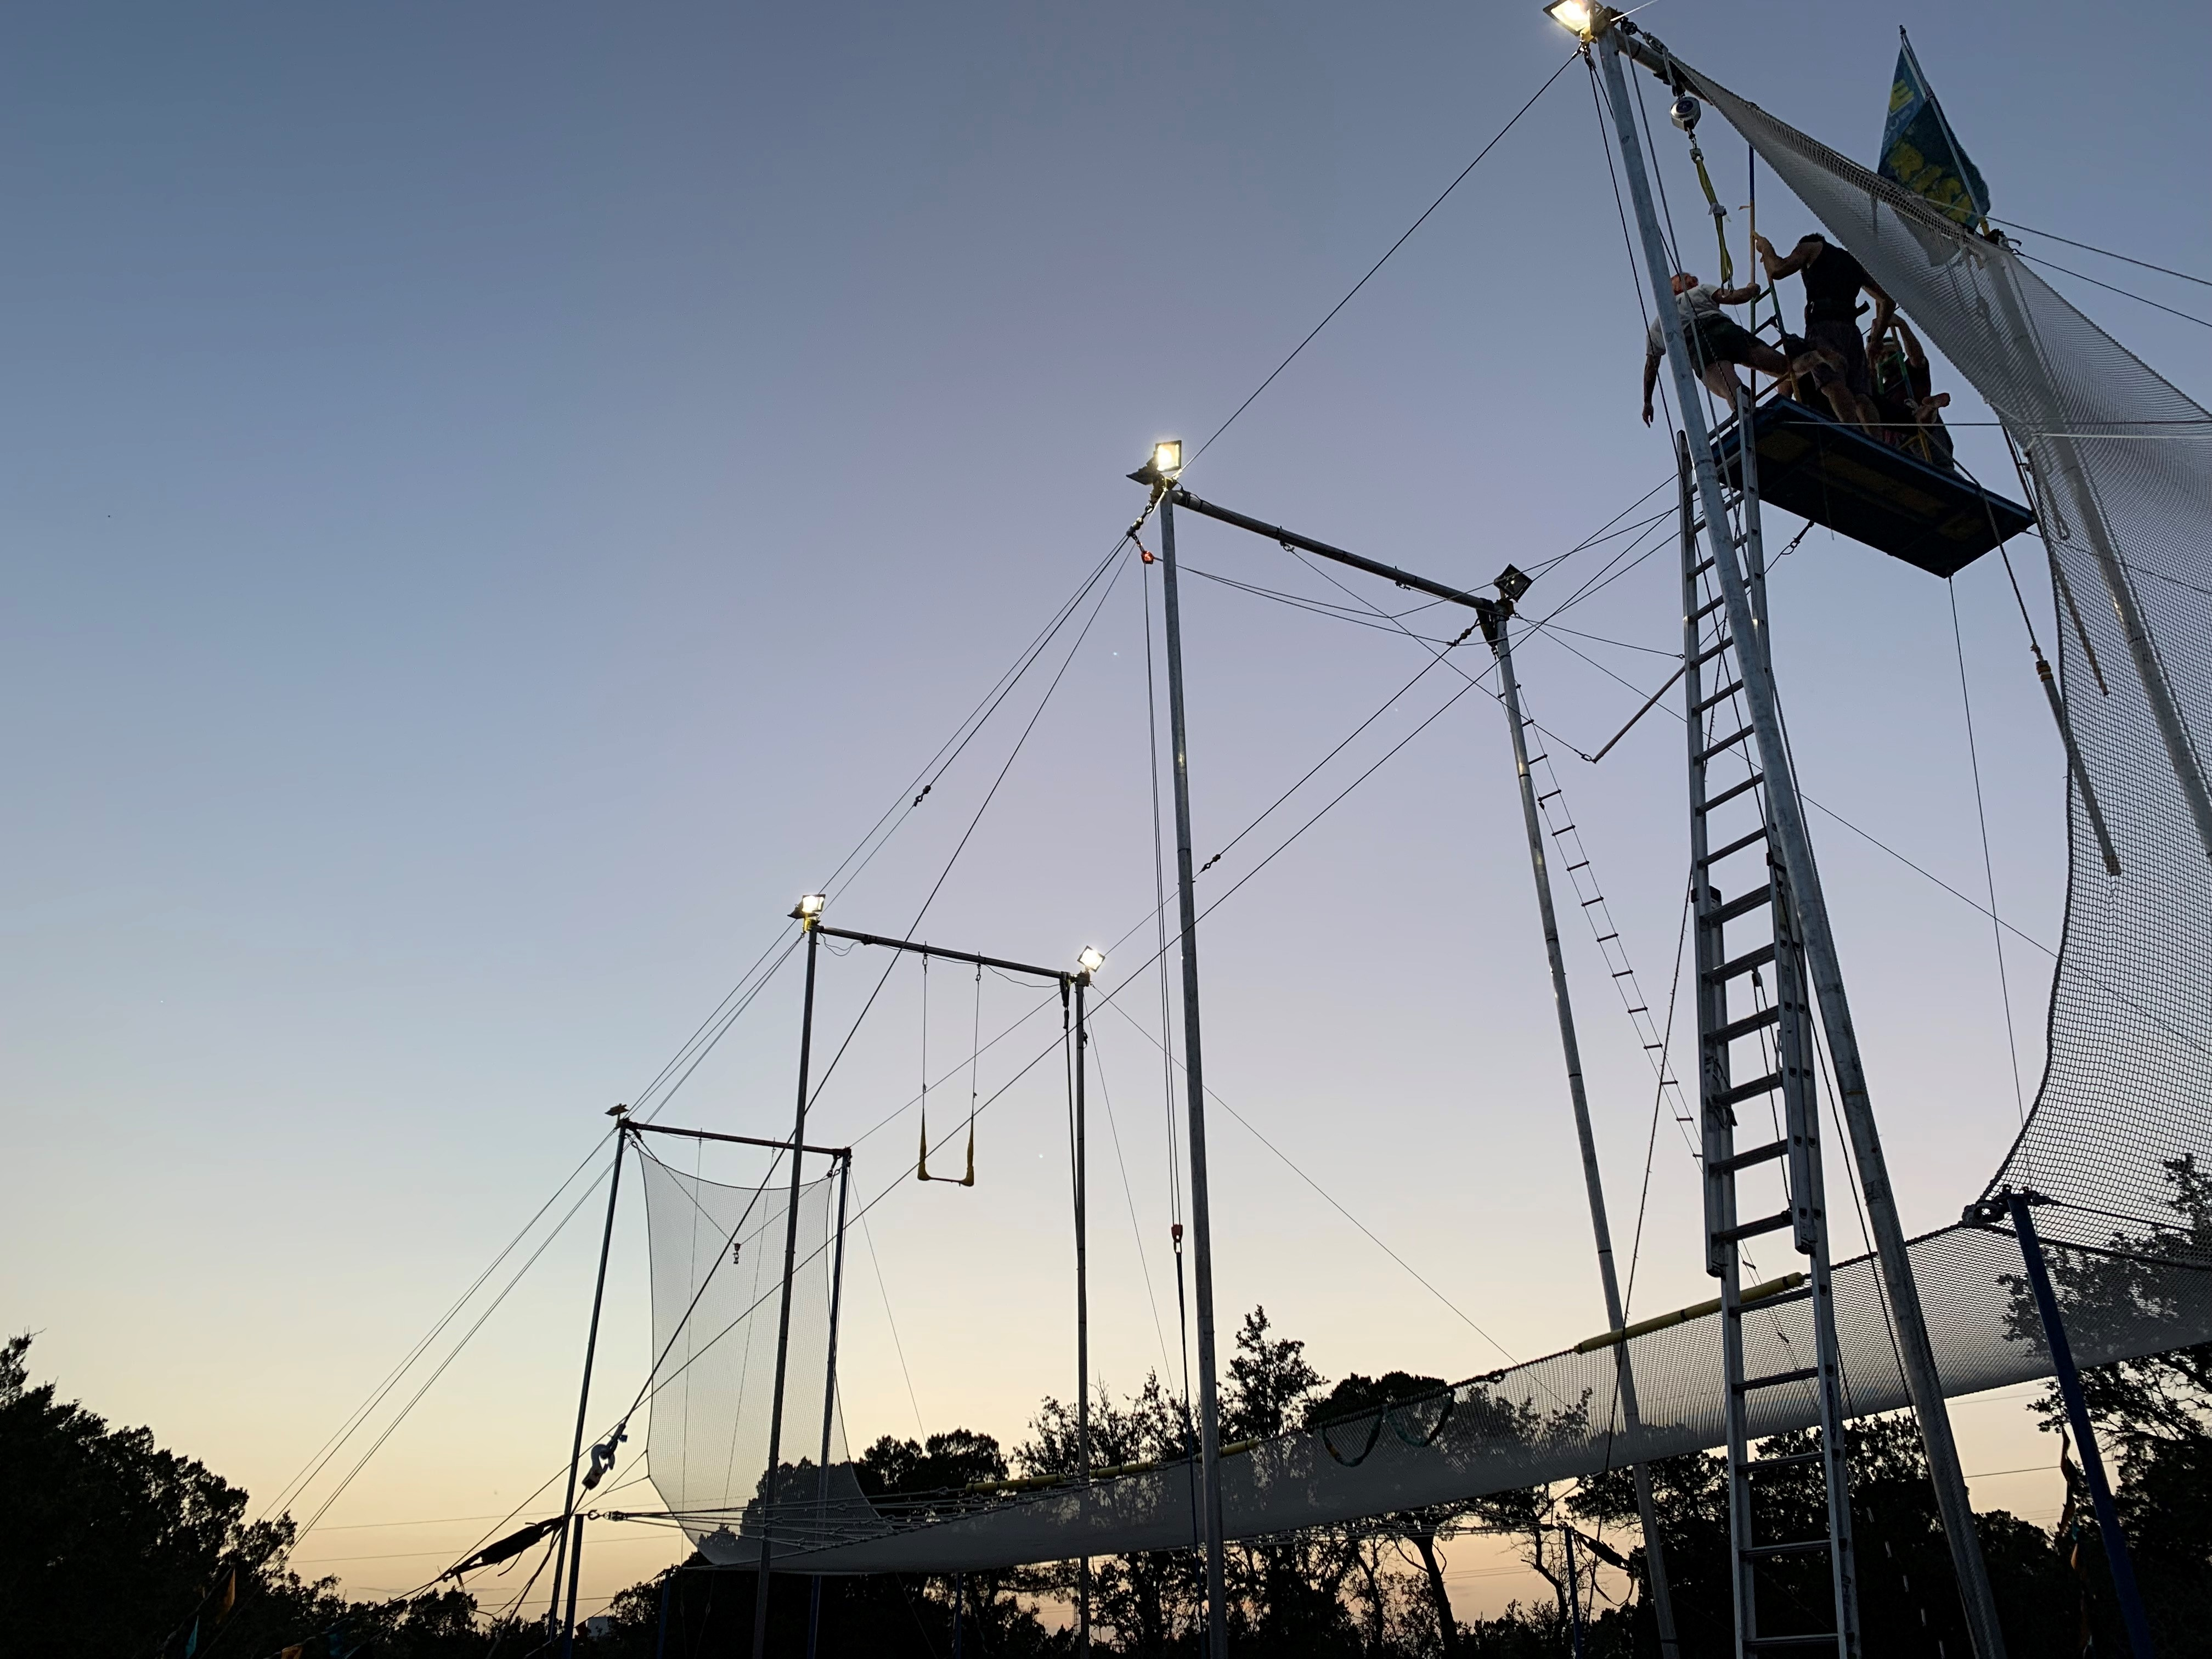 Flying Trapeze 1